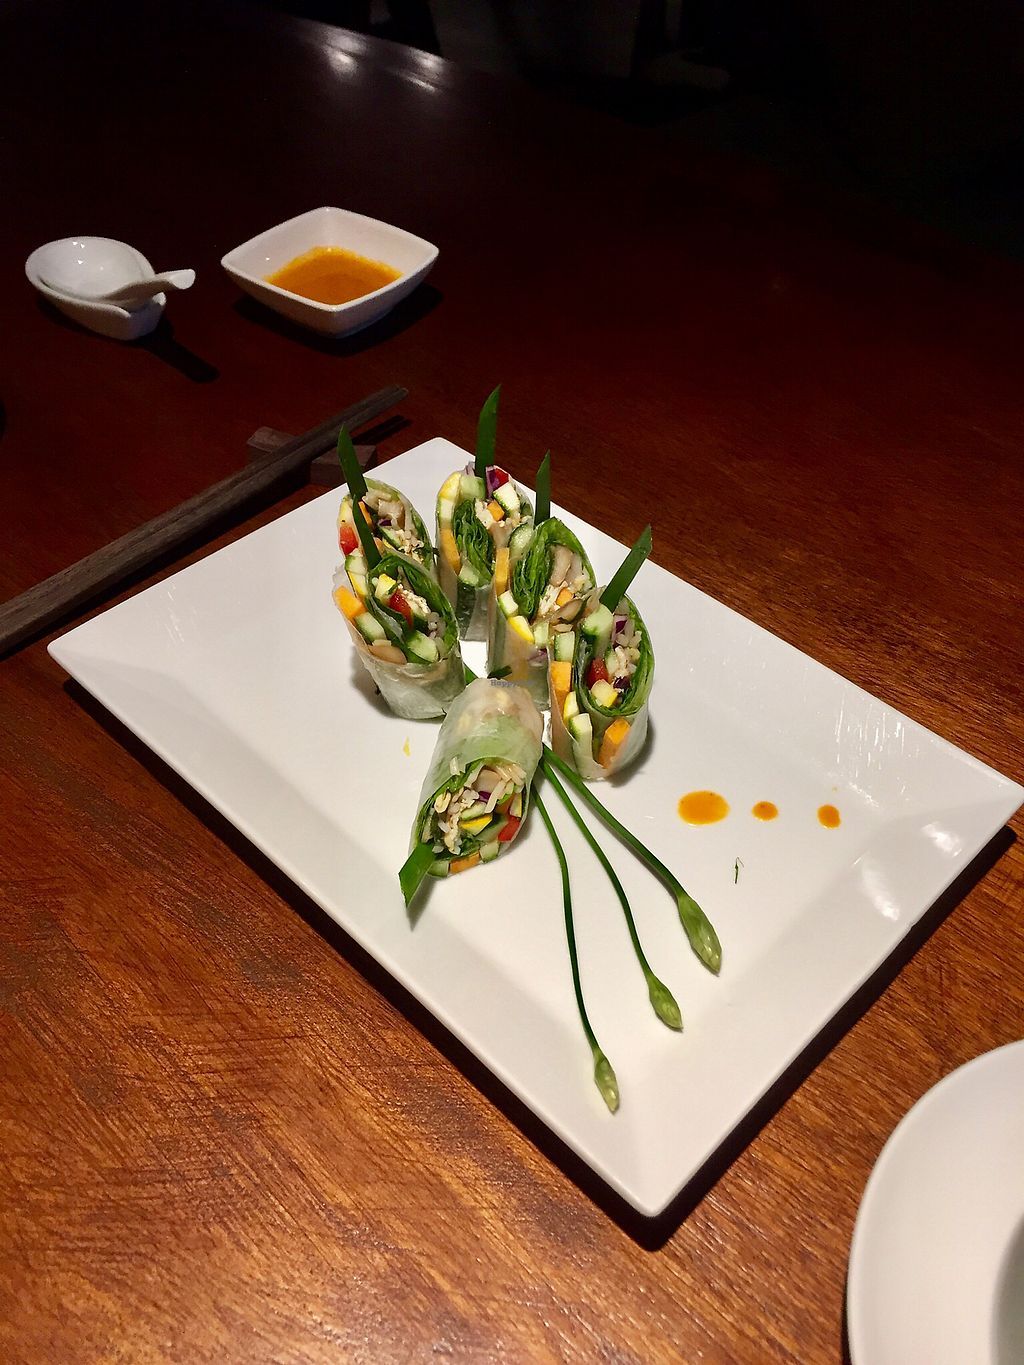 """Photo of Hum Vegetarian - District 1  by <a href=""""/members/profile/kars10"""">kars10</a> <br/>Spring rolls  <br/> February 1, 2018  - <a href='/contact/abuse/image/70137/353521'>Report</a>"""